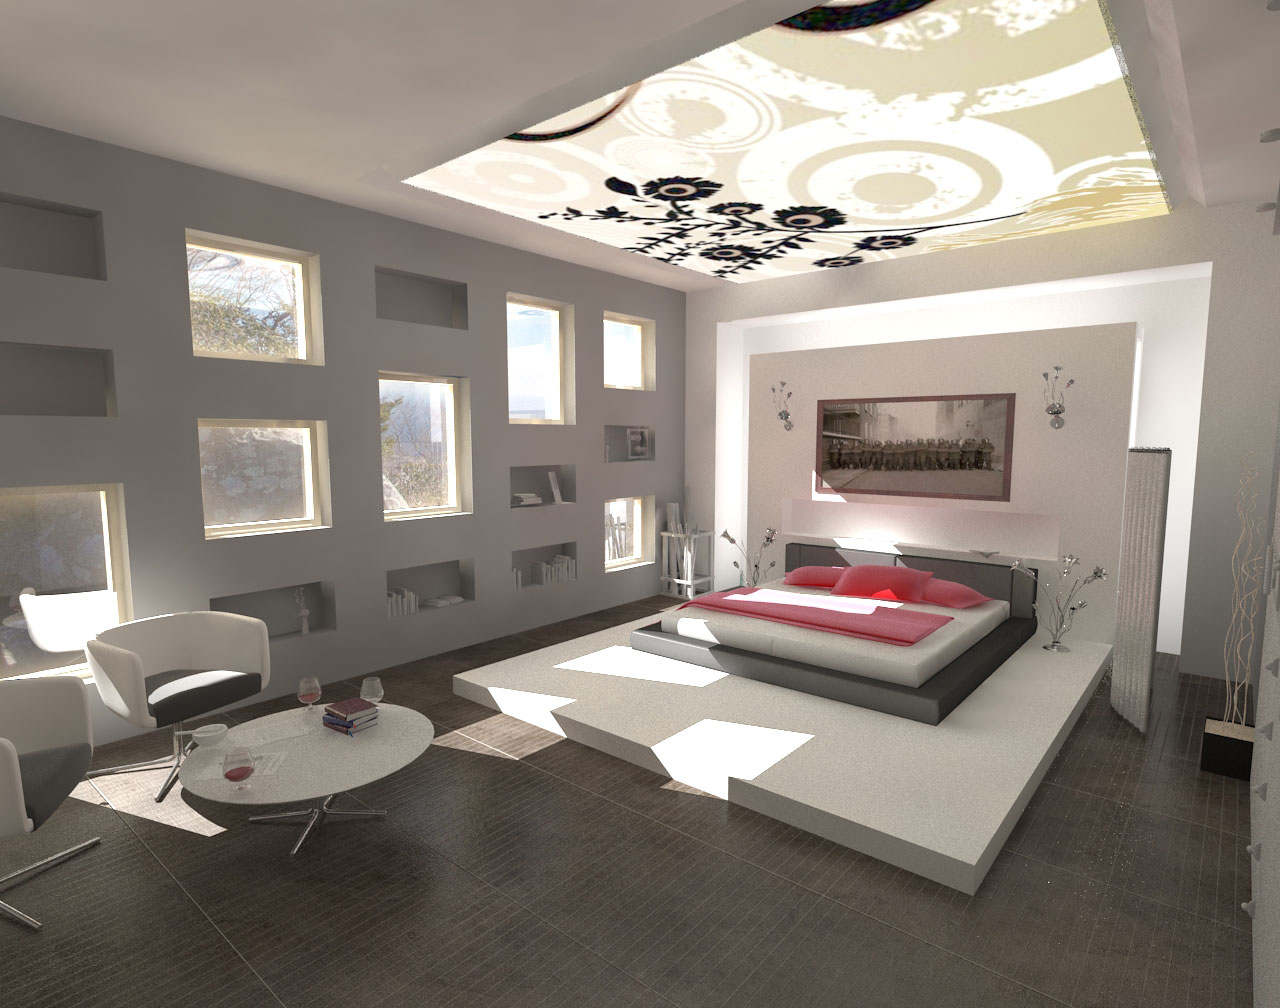 Luxury-Bedroom5.